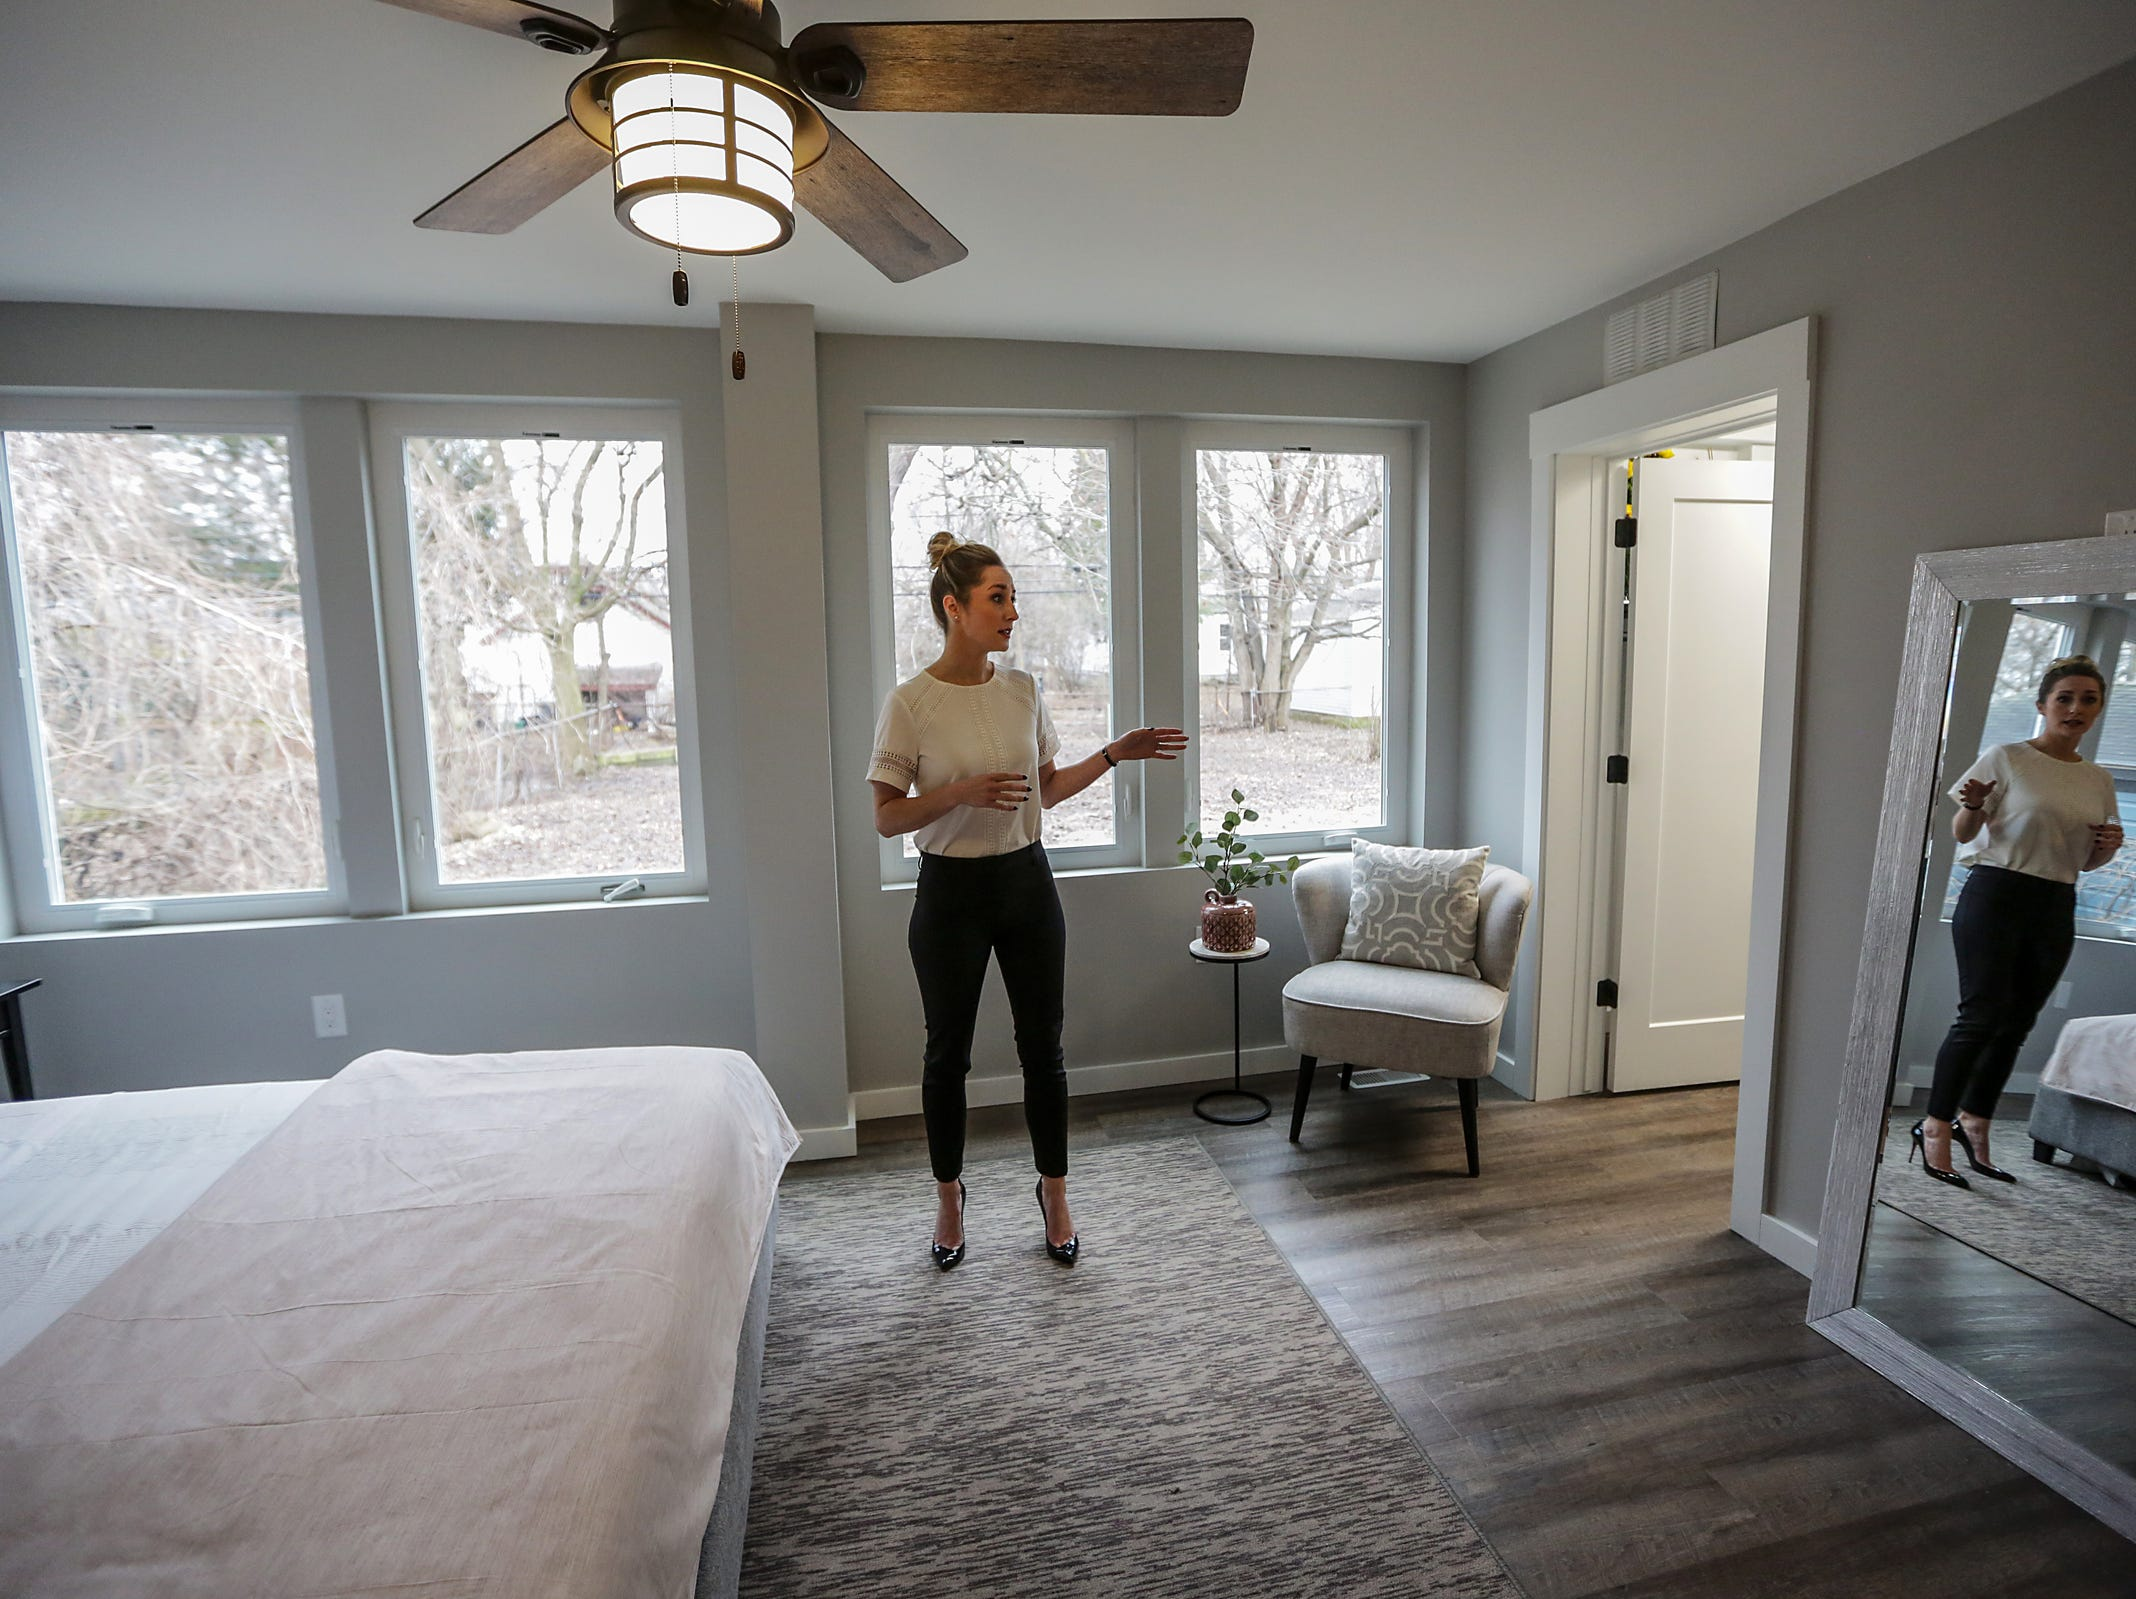 Realtor Stephanie Coyle shows the master bedroom, three shipping containers wide, photographed on Thursday, March 14, 2019.